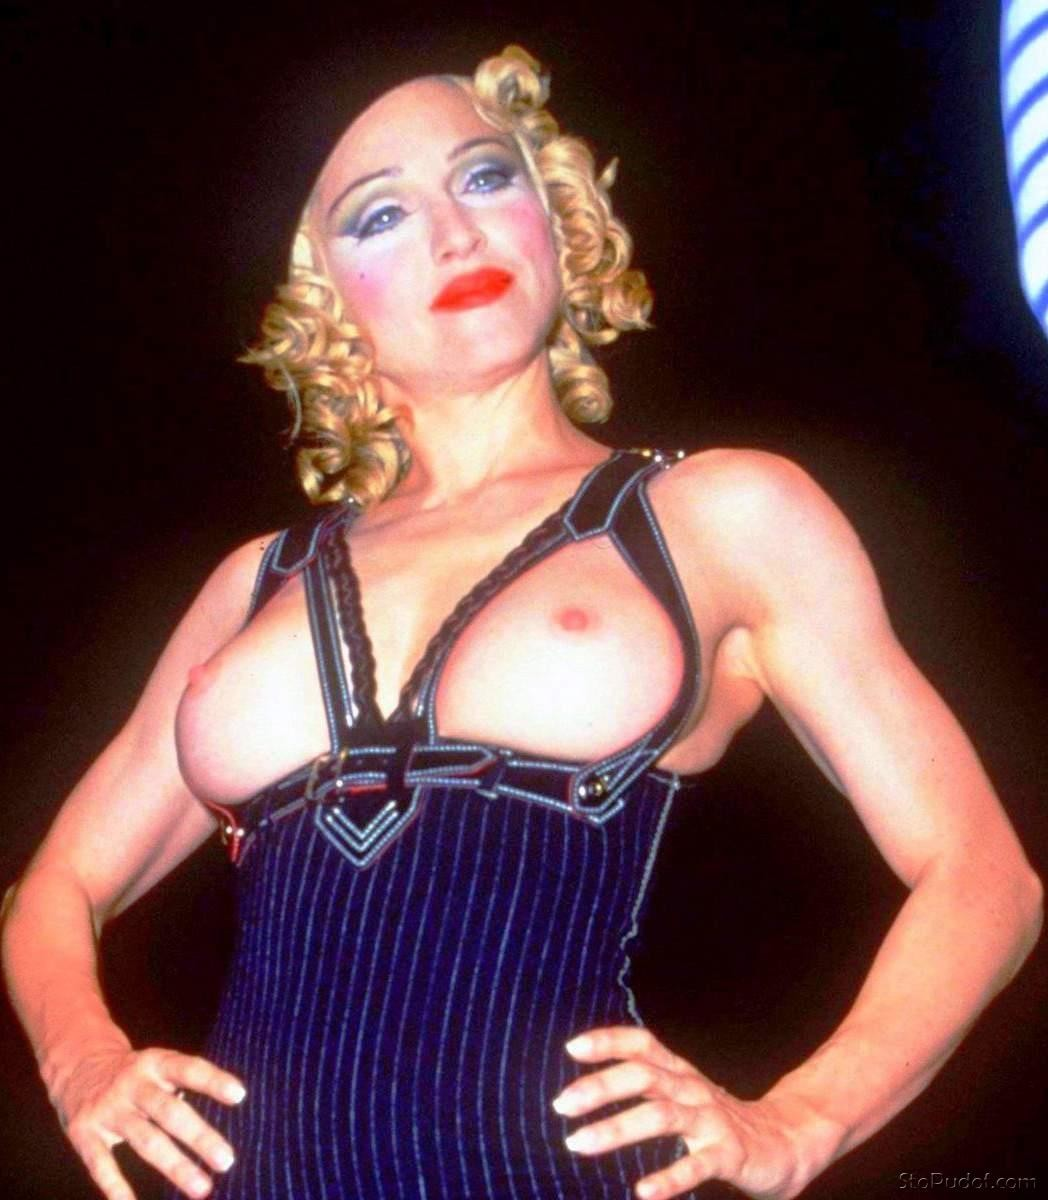 i want to see the Madonna nude photos - UkPhotoSafari